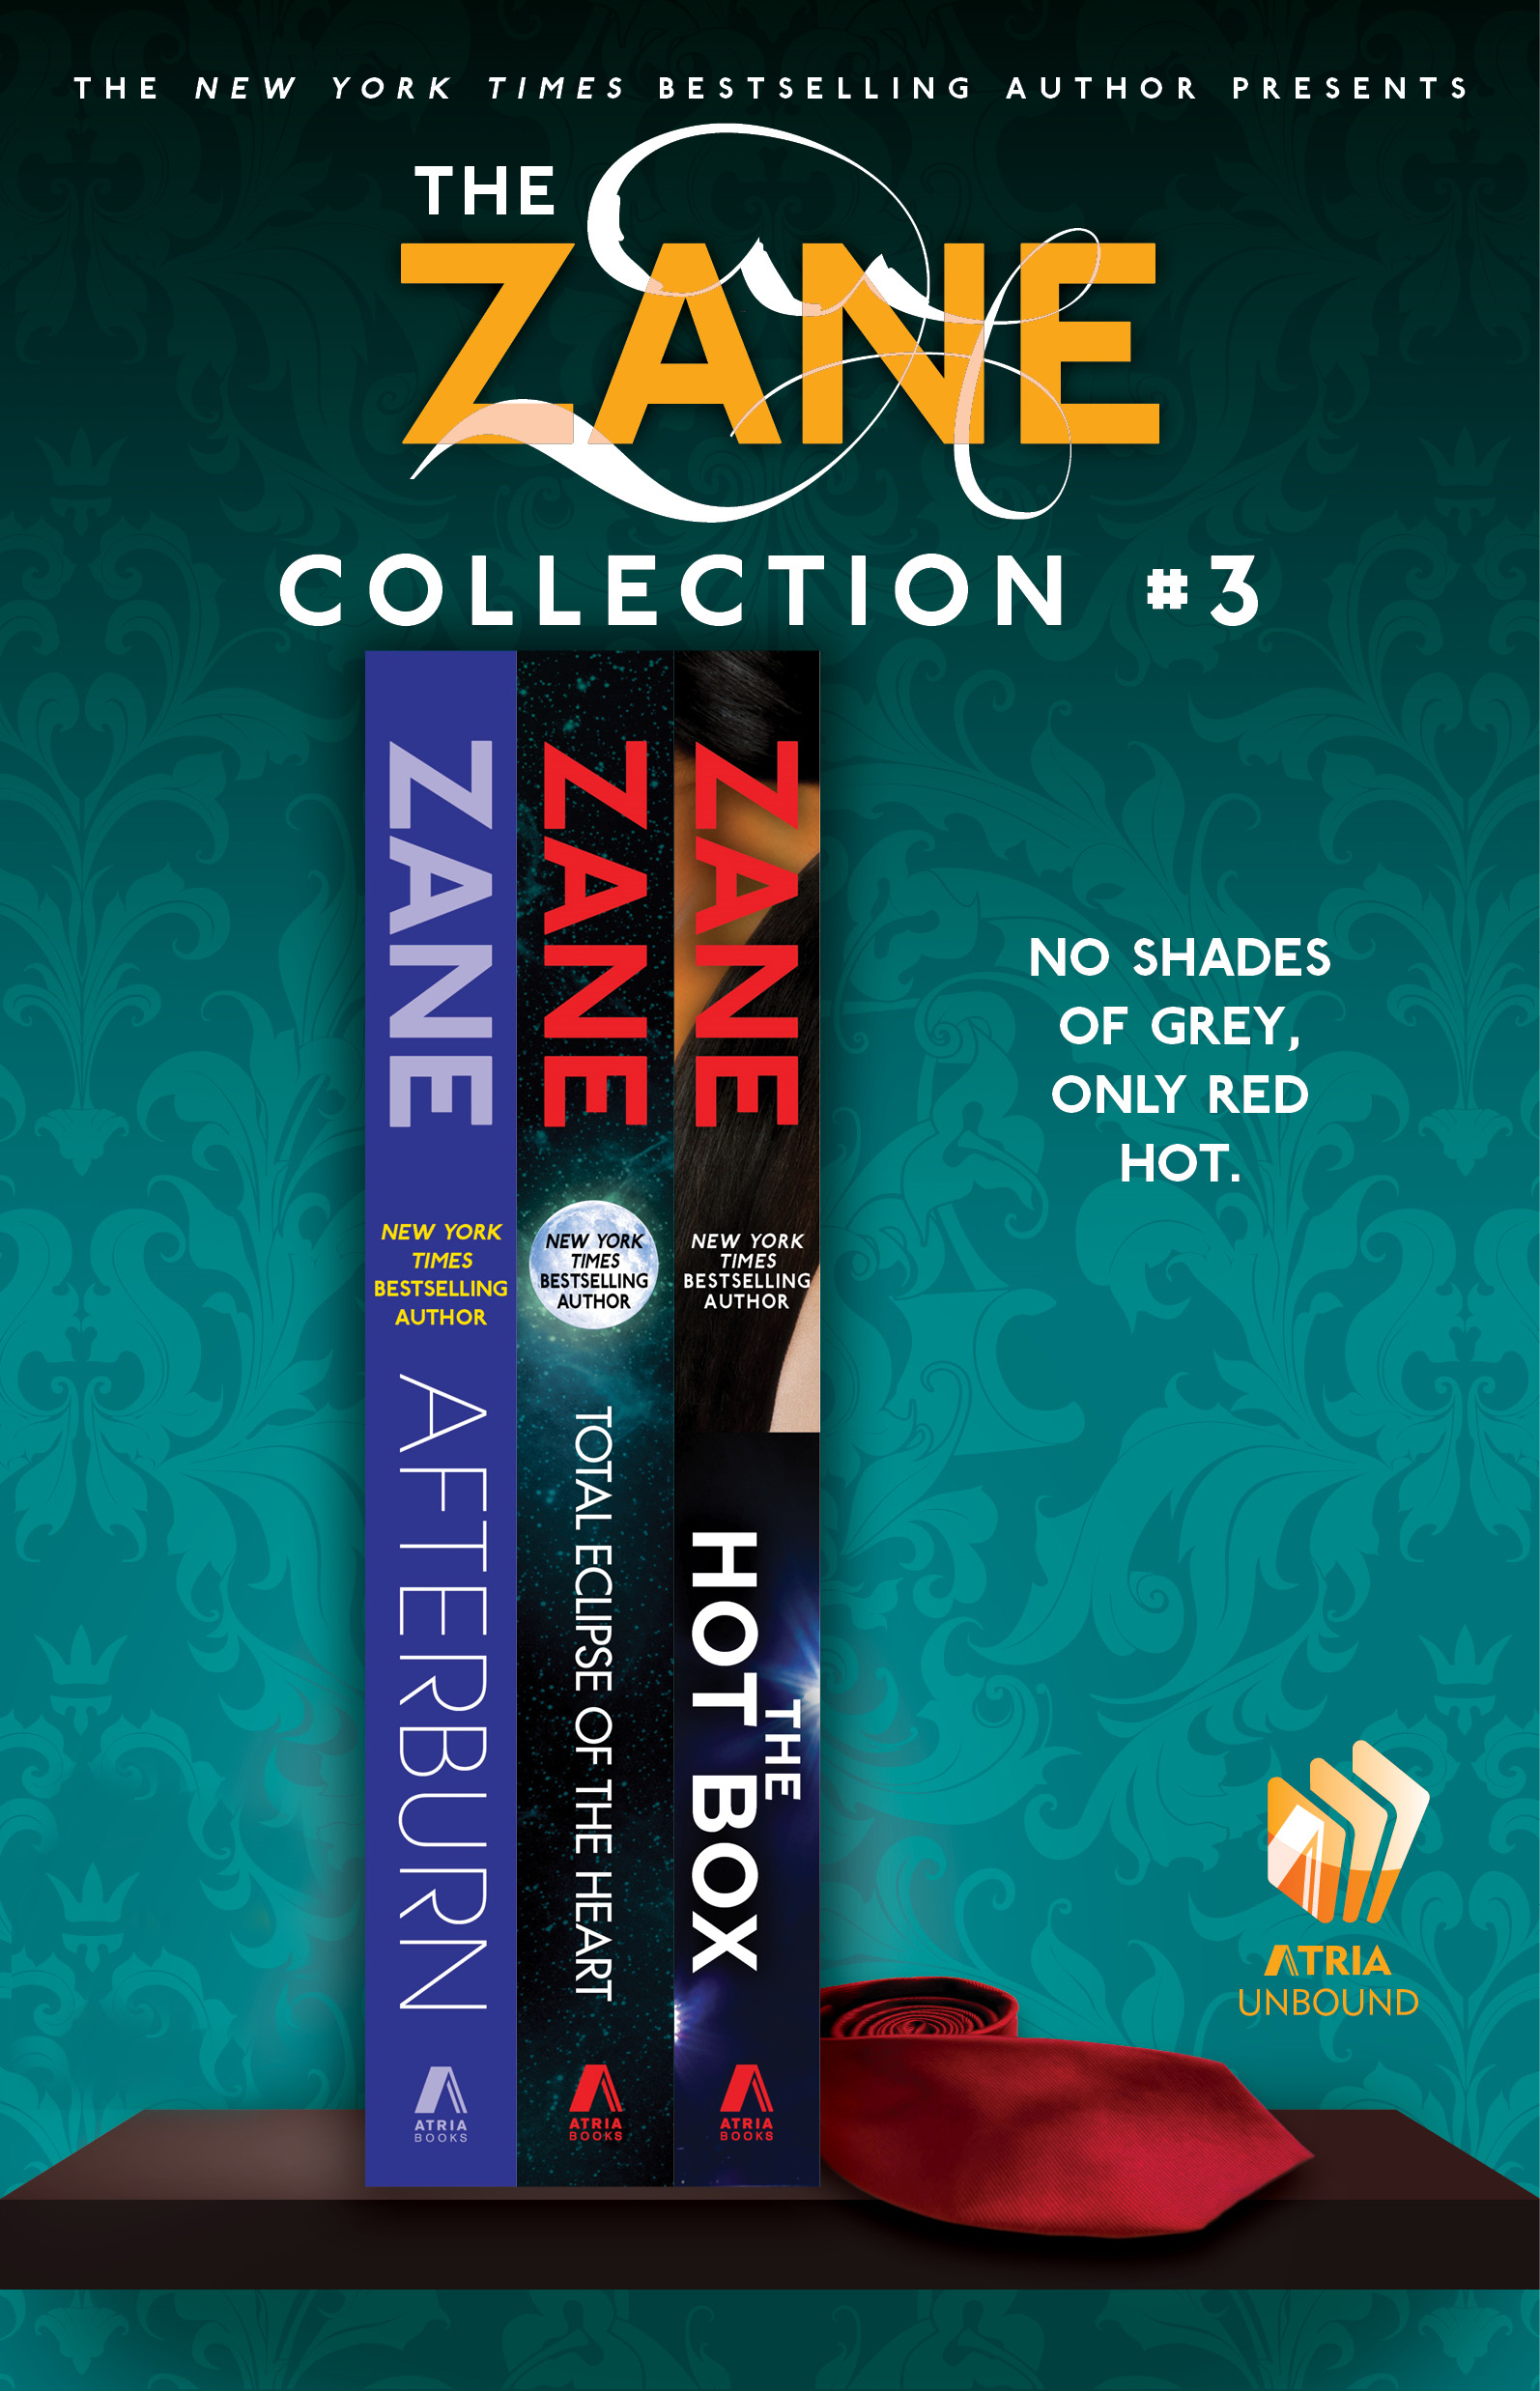 The Zane Collection #3 By: Zane